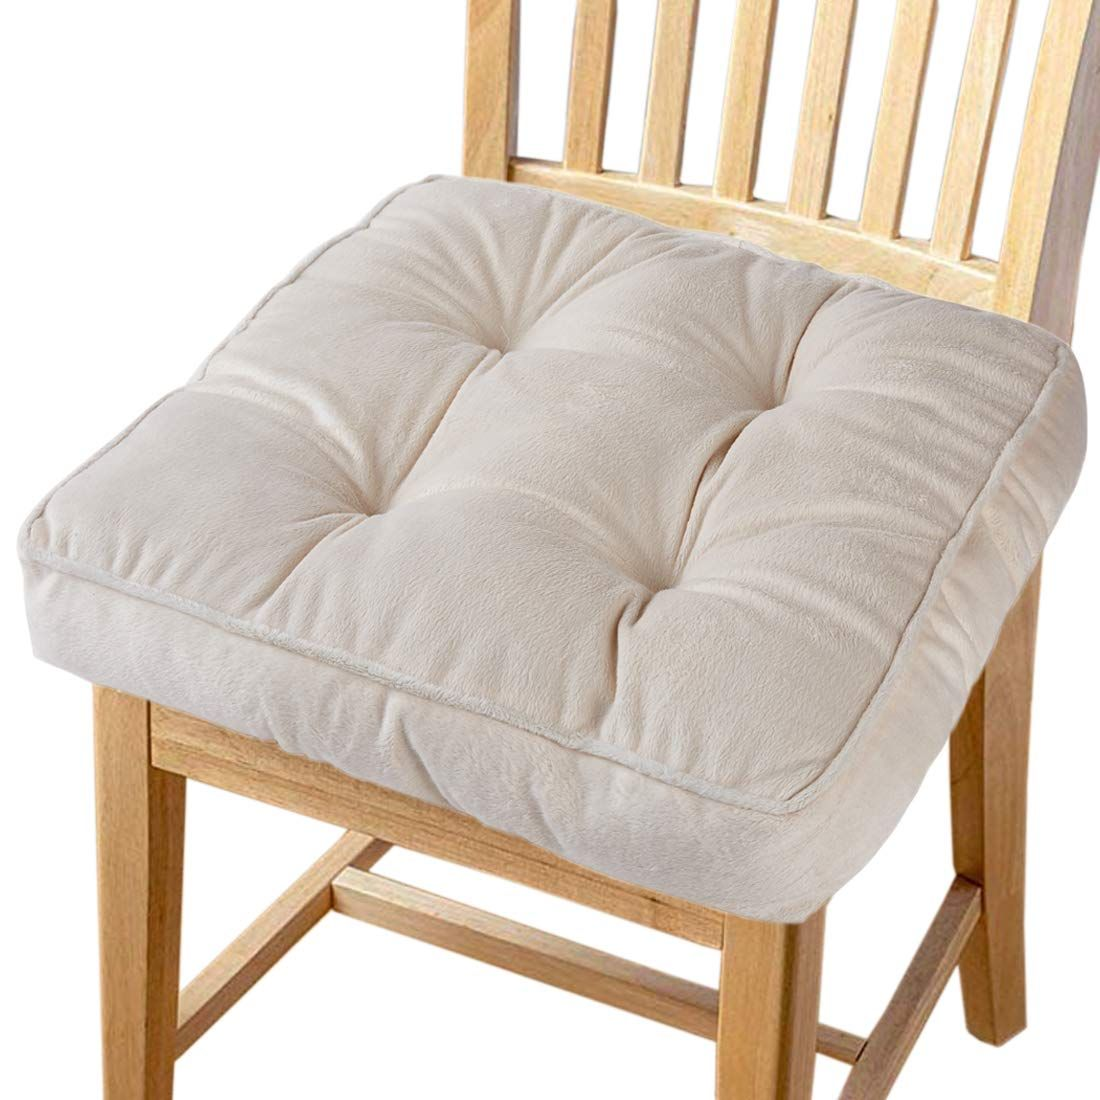 Big Hippo Chair Pads Square Cotton Chair Cushion with Ties Soft